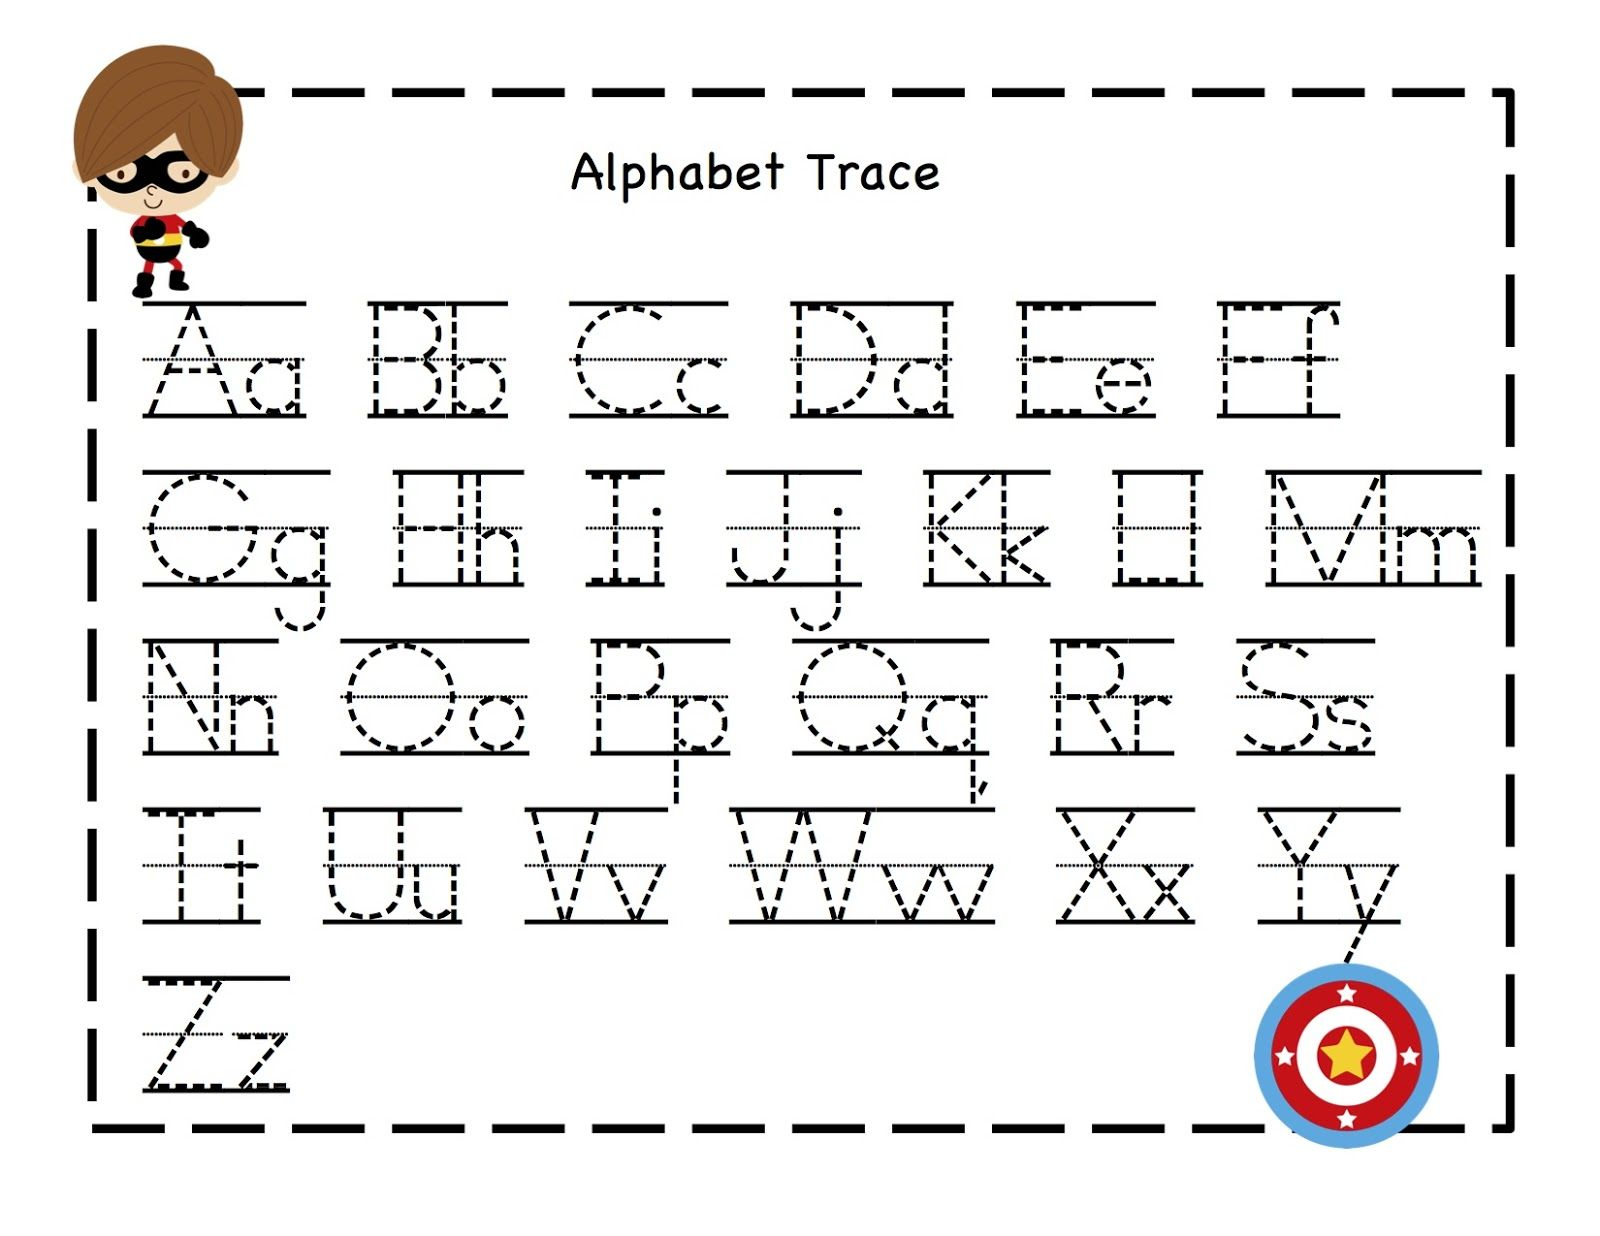 Worksheets Abc Worksheet For Preschool abc tracing sheets for preschool kids kiddo shelter shelter